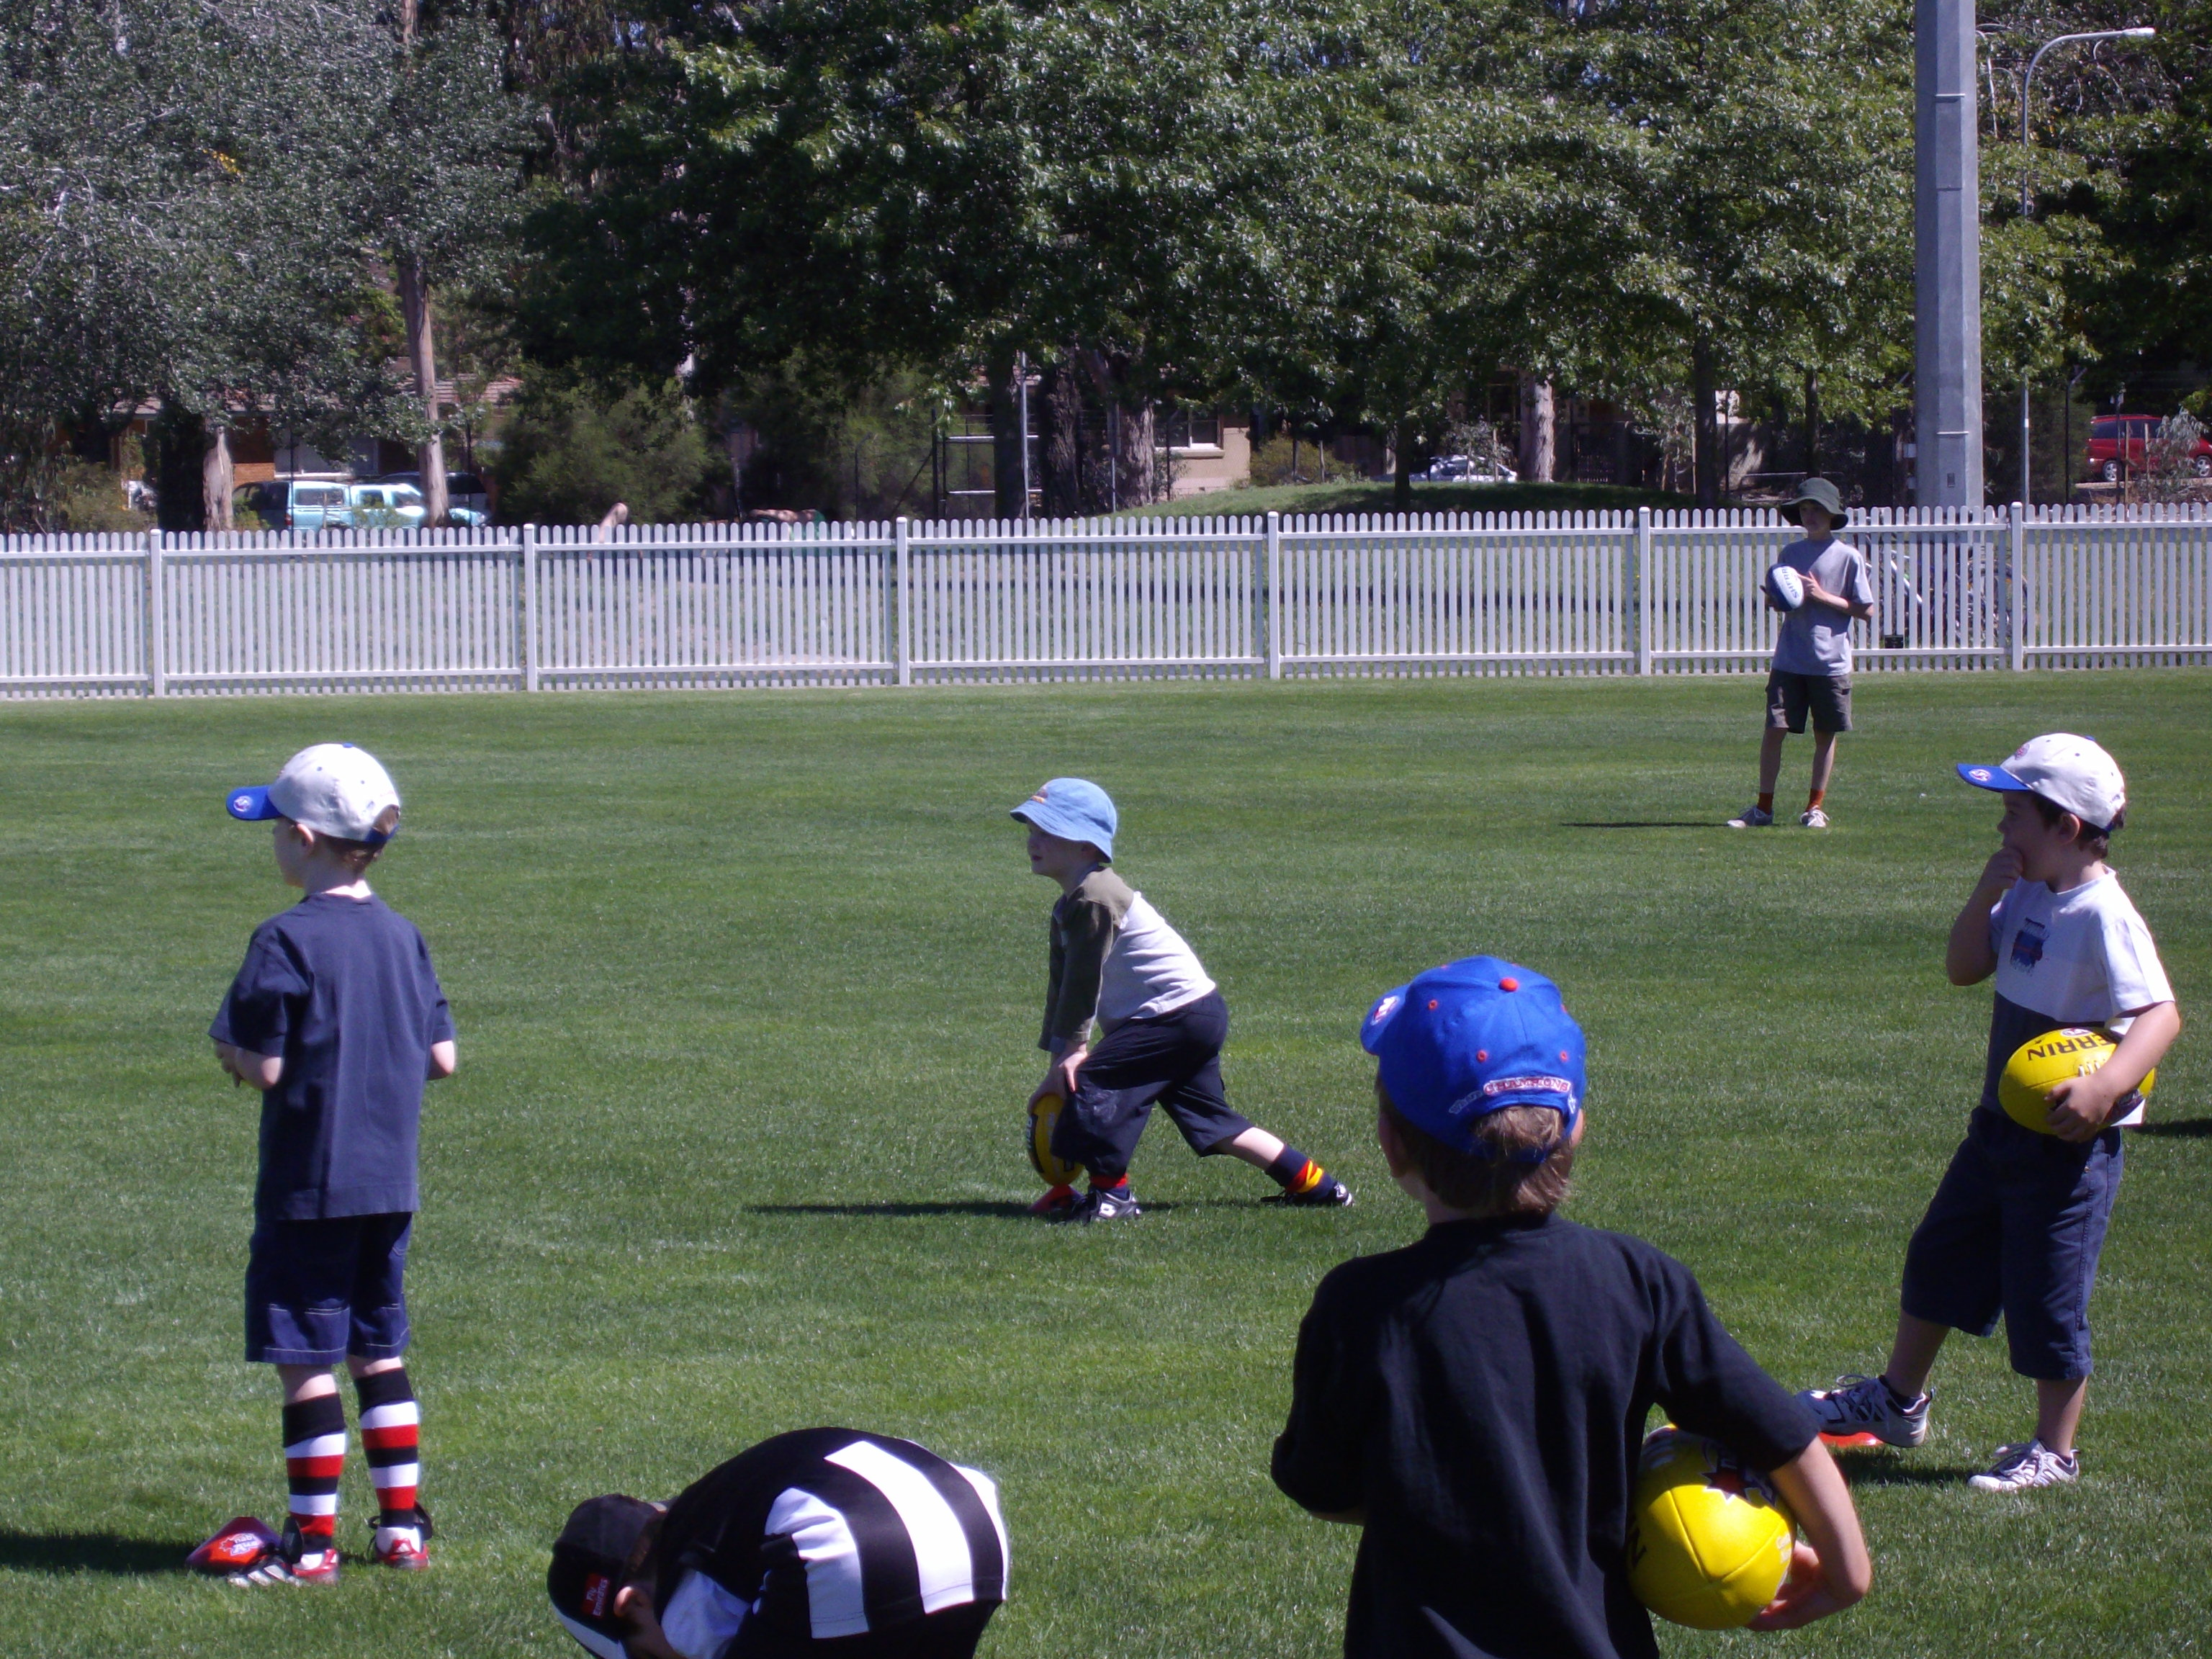 Seb's First Footy Training | The Life and Times of Bossy Boots